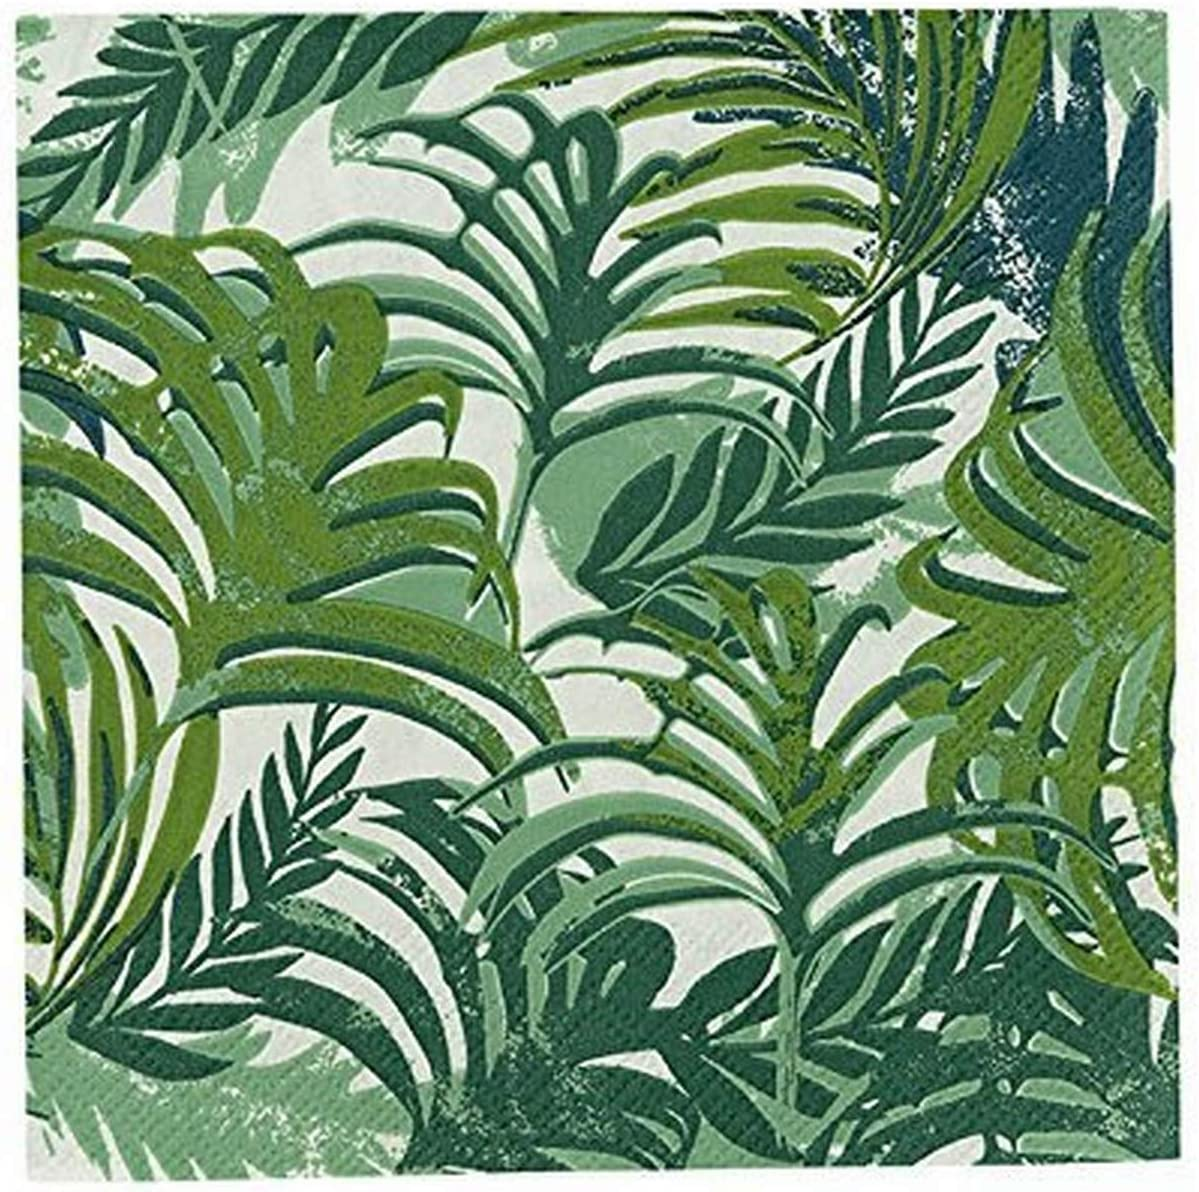 Talking Tables Fiesta Party Supplies   Fiesta Napkins   Great For Jungle Themed Party, Luau Party, Hawaiian Party, Baby Shower And Birthday Decorations   Paper, 20 Pack